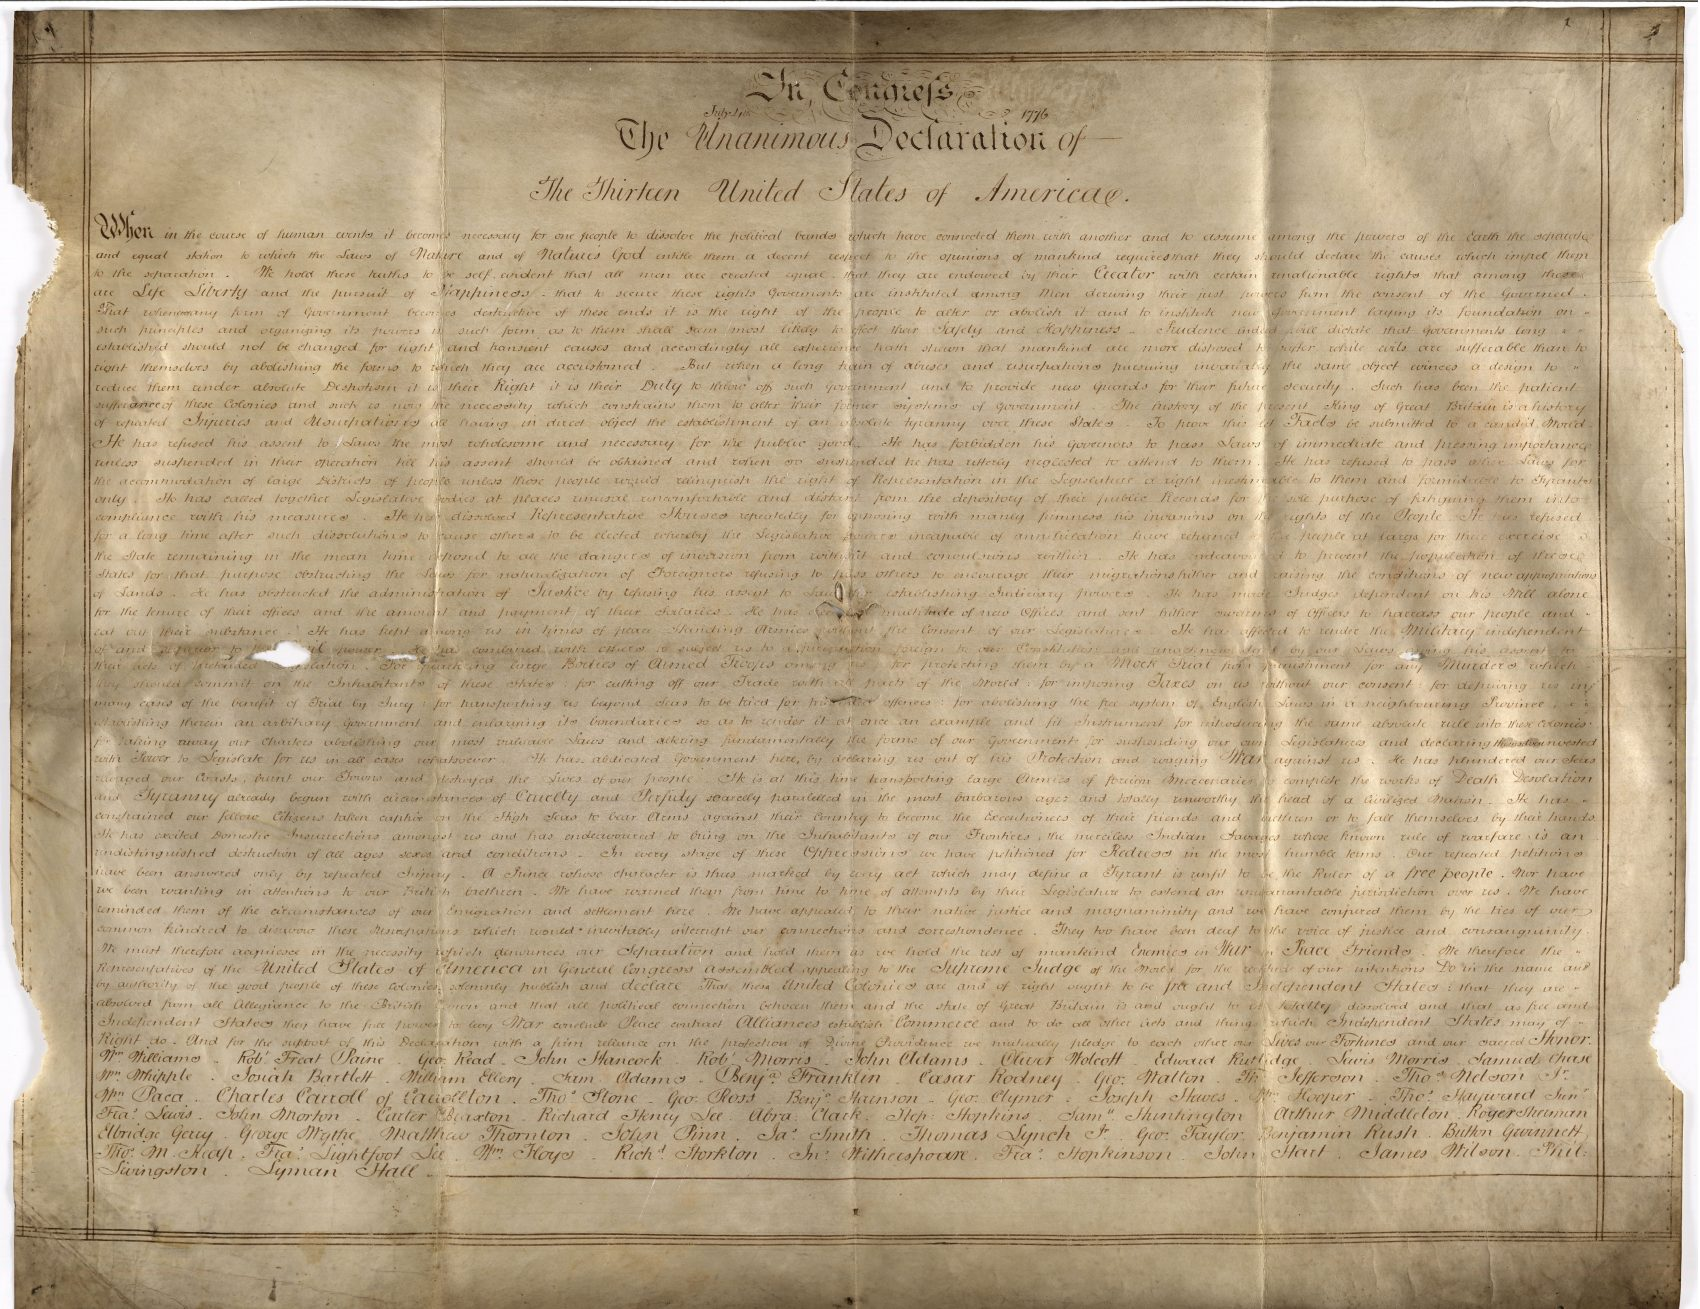 The Sussex Declaration. West Sussex Record Office Add Mss 8981. (Courtesy)